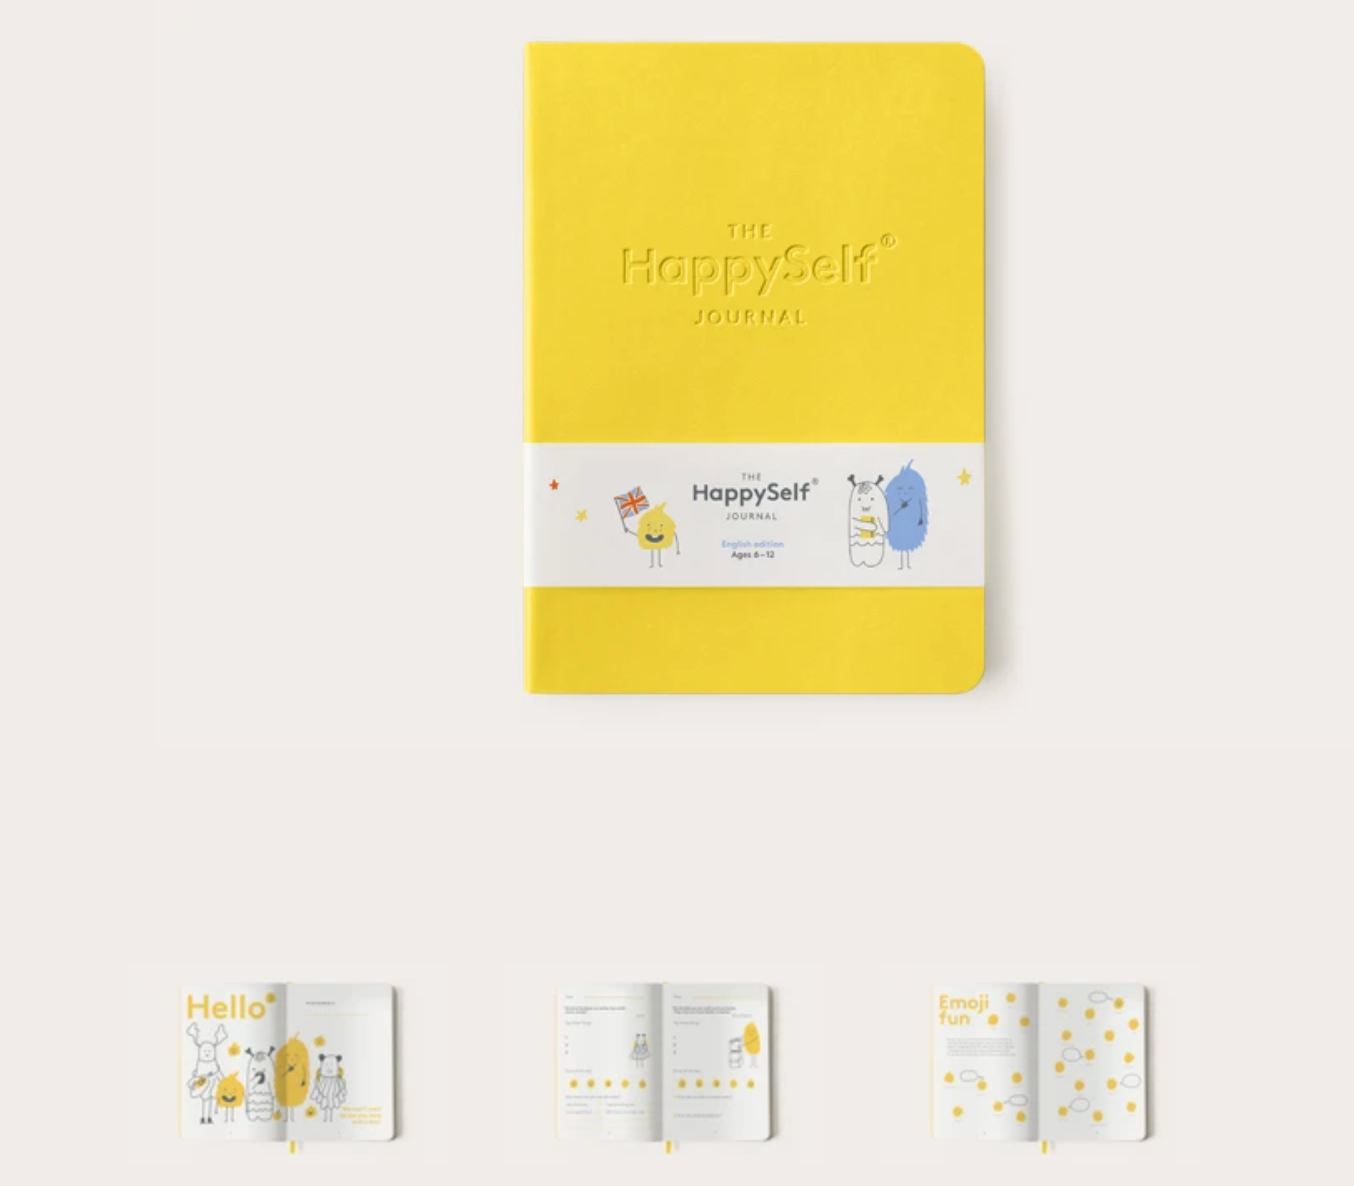 HappySelf - A daily journal for children to promote happiness, develop positive habits and nurture enquiring minds